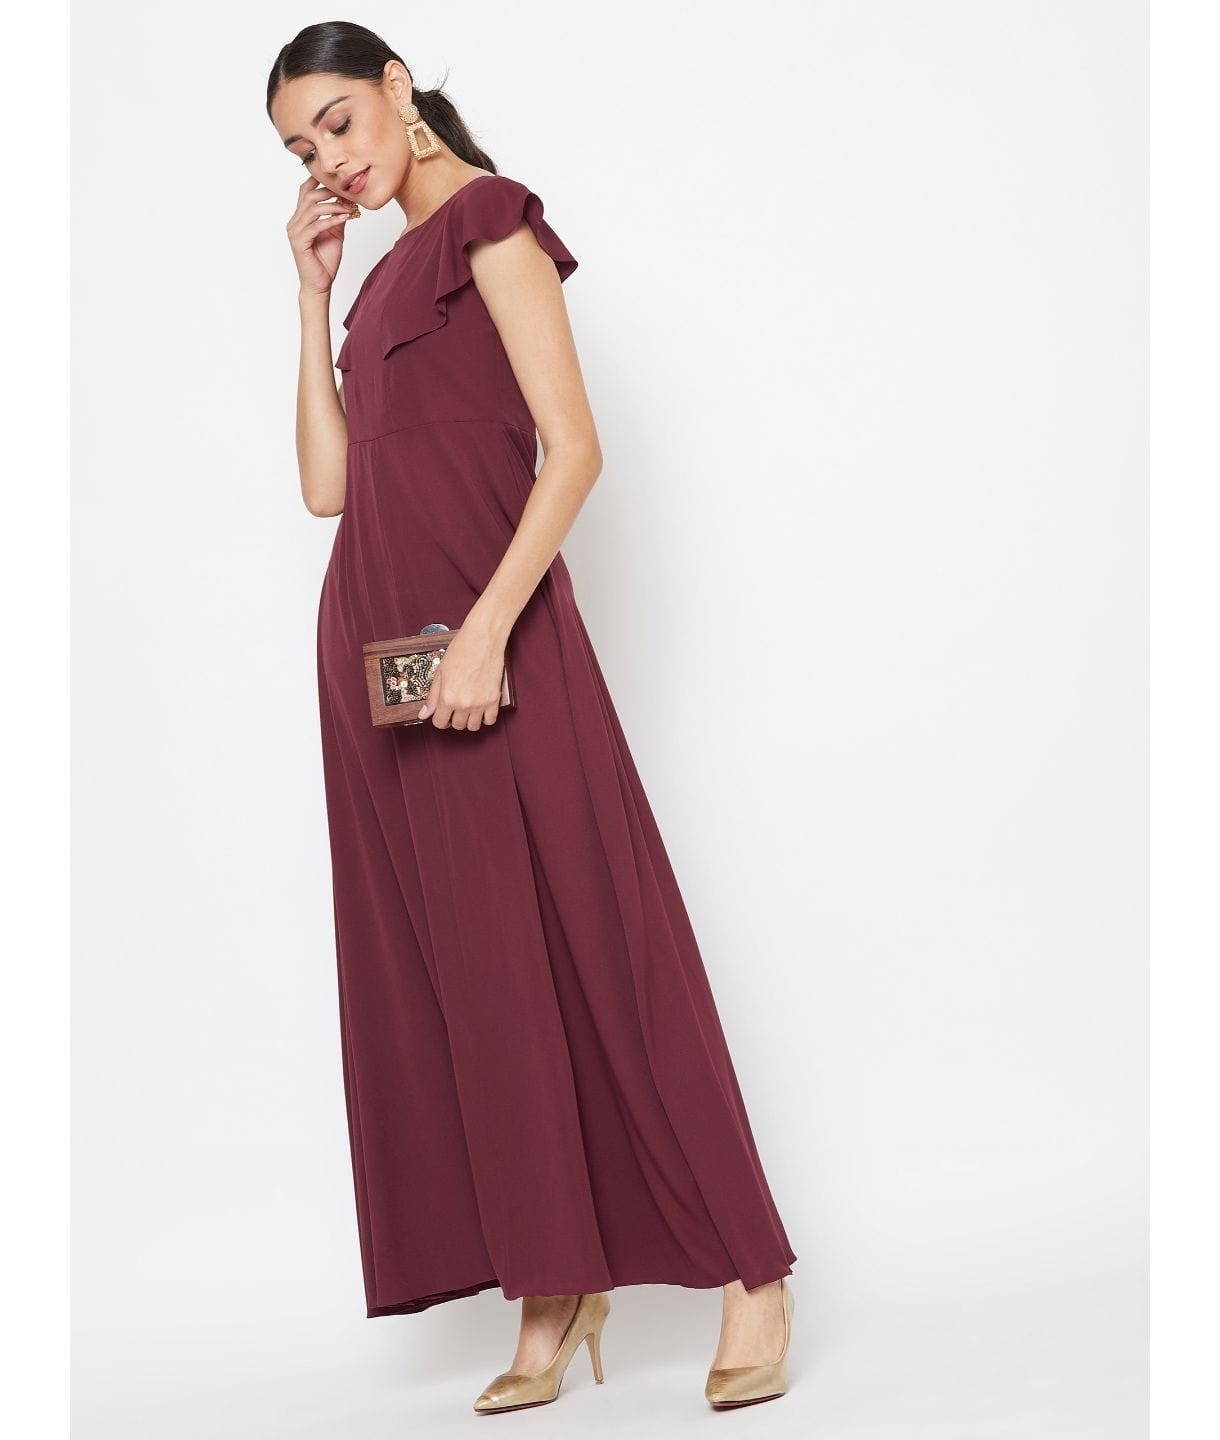 Maroon Solid Crepe Ruffled Maternity Dress/Gown